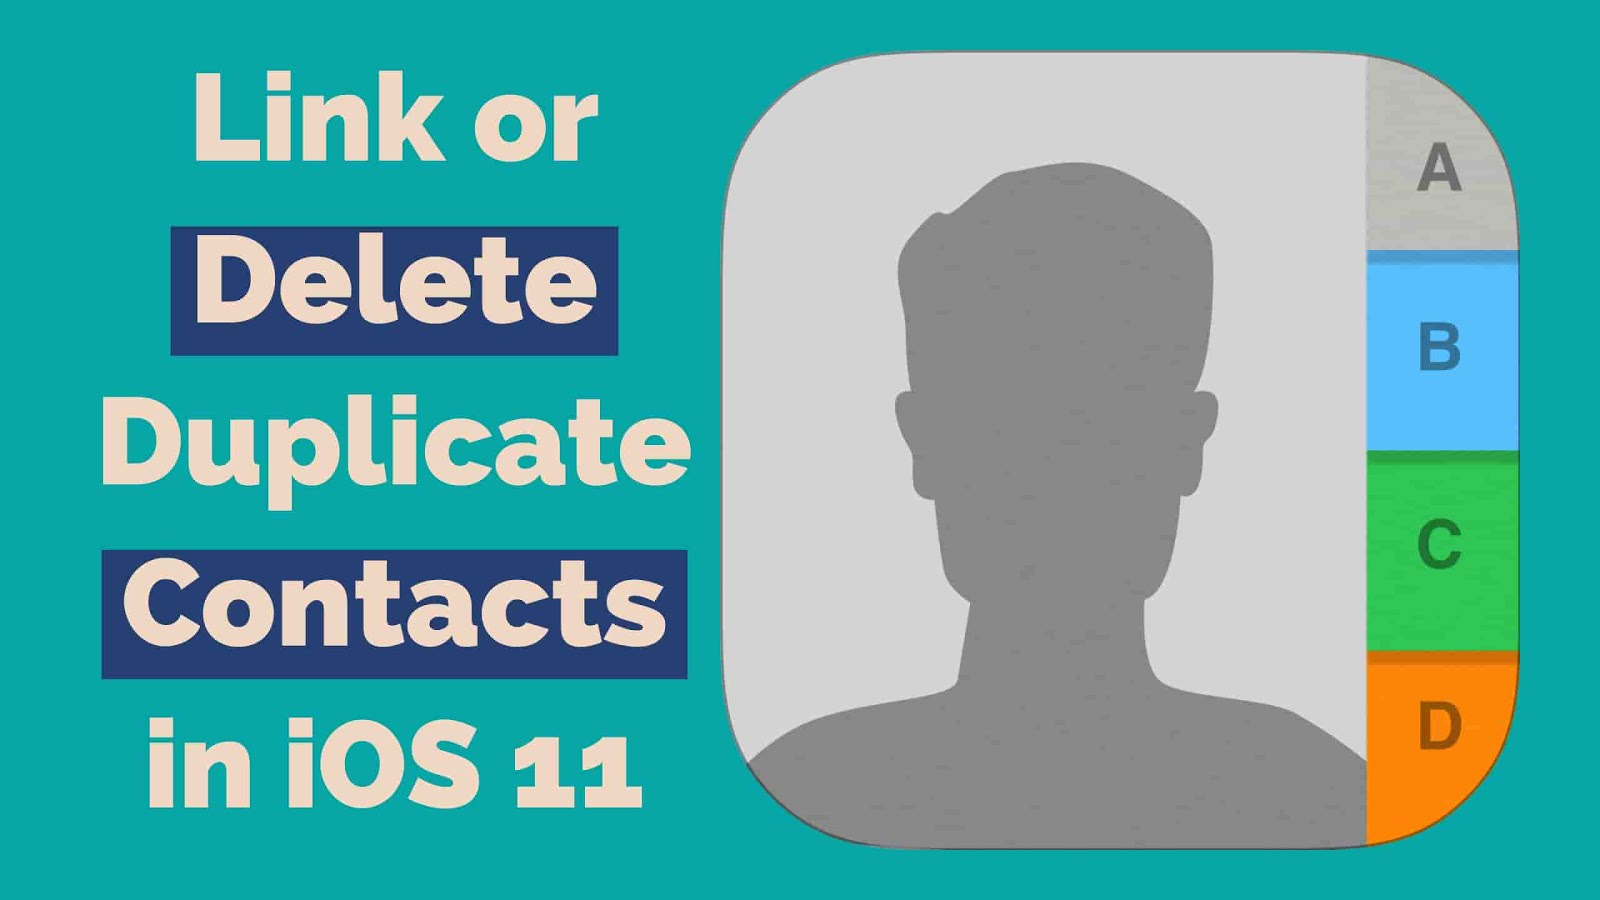 In this case, either you need to delete your duplicates contact one by one or link all your duplicates contacts with only one contact. Here's how to delete or link duplicates contacts in iOS 11.